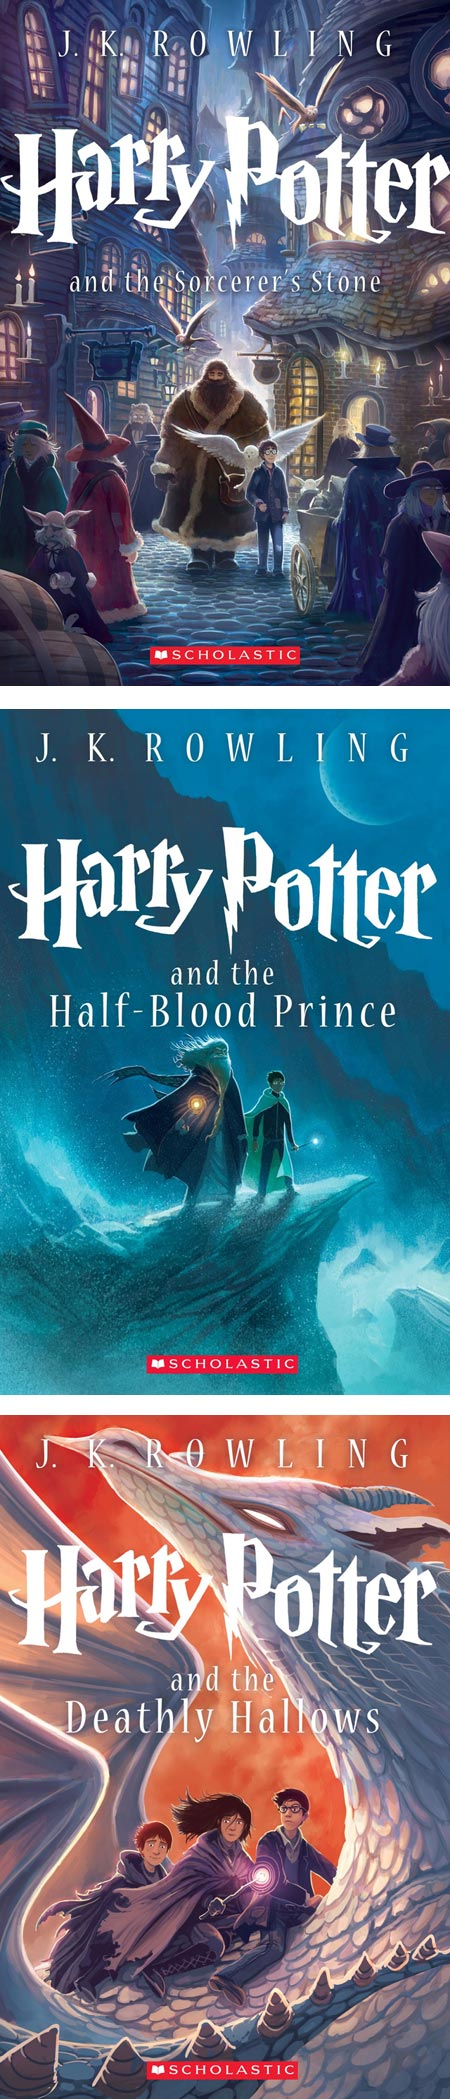 Kazu Kibuishi's new Harry Potter cover illustrations